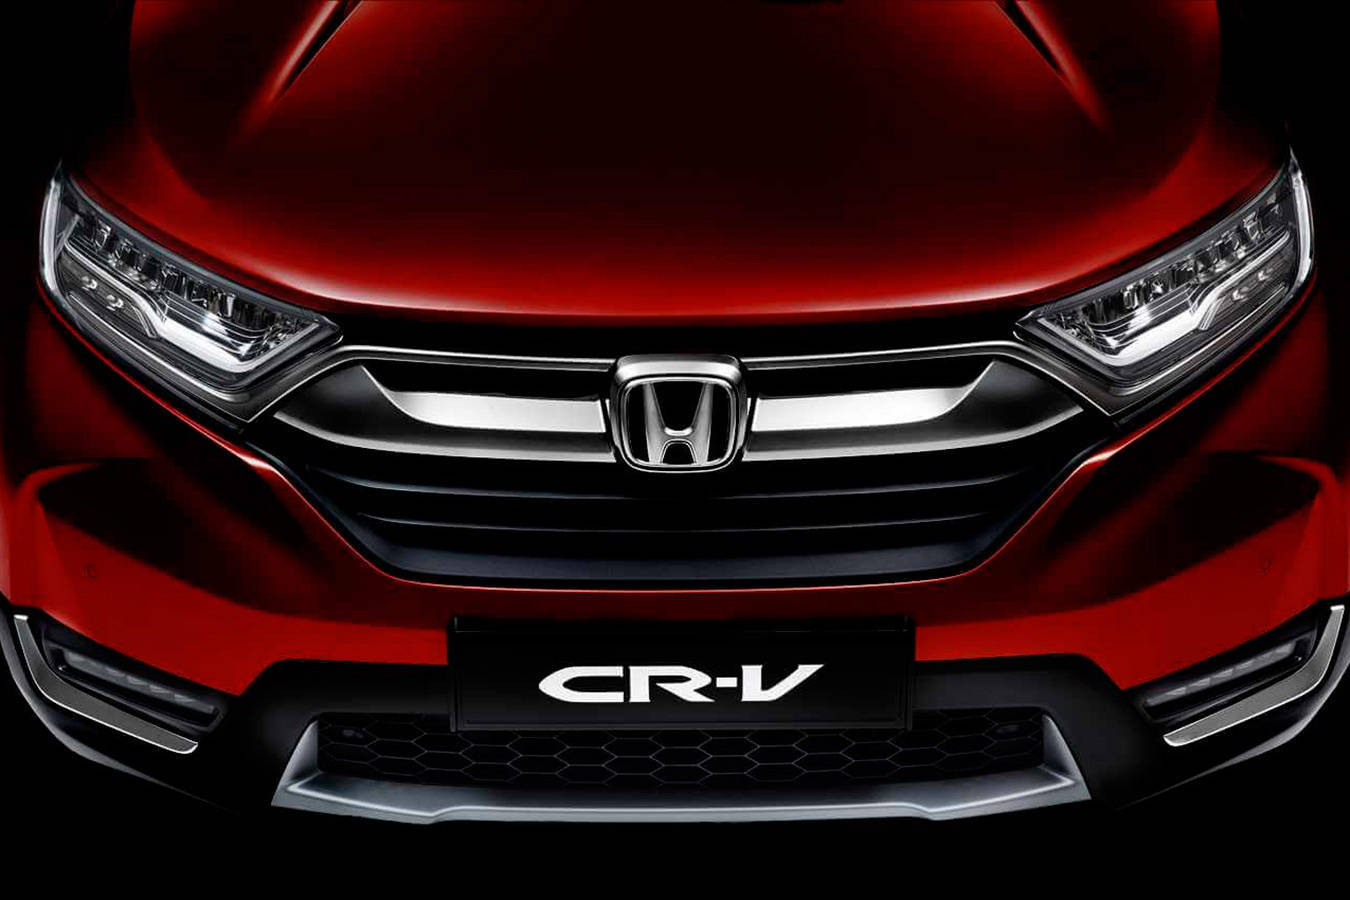 crv-car-1_big